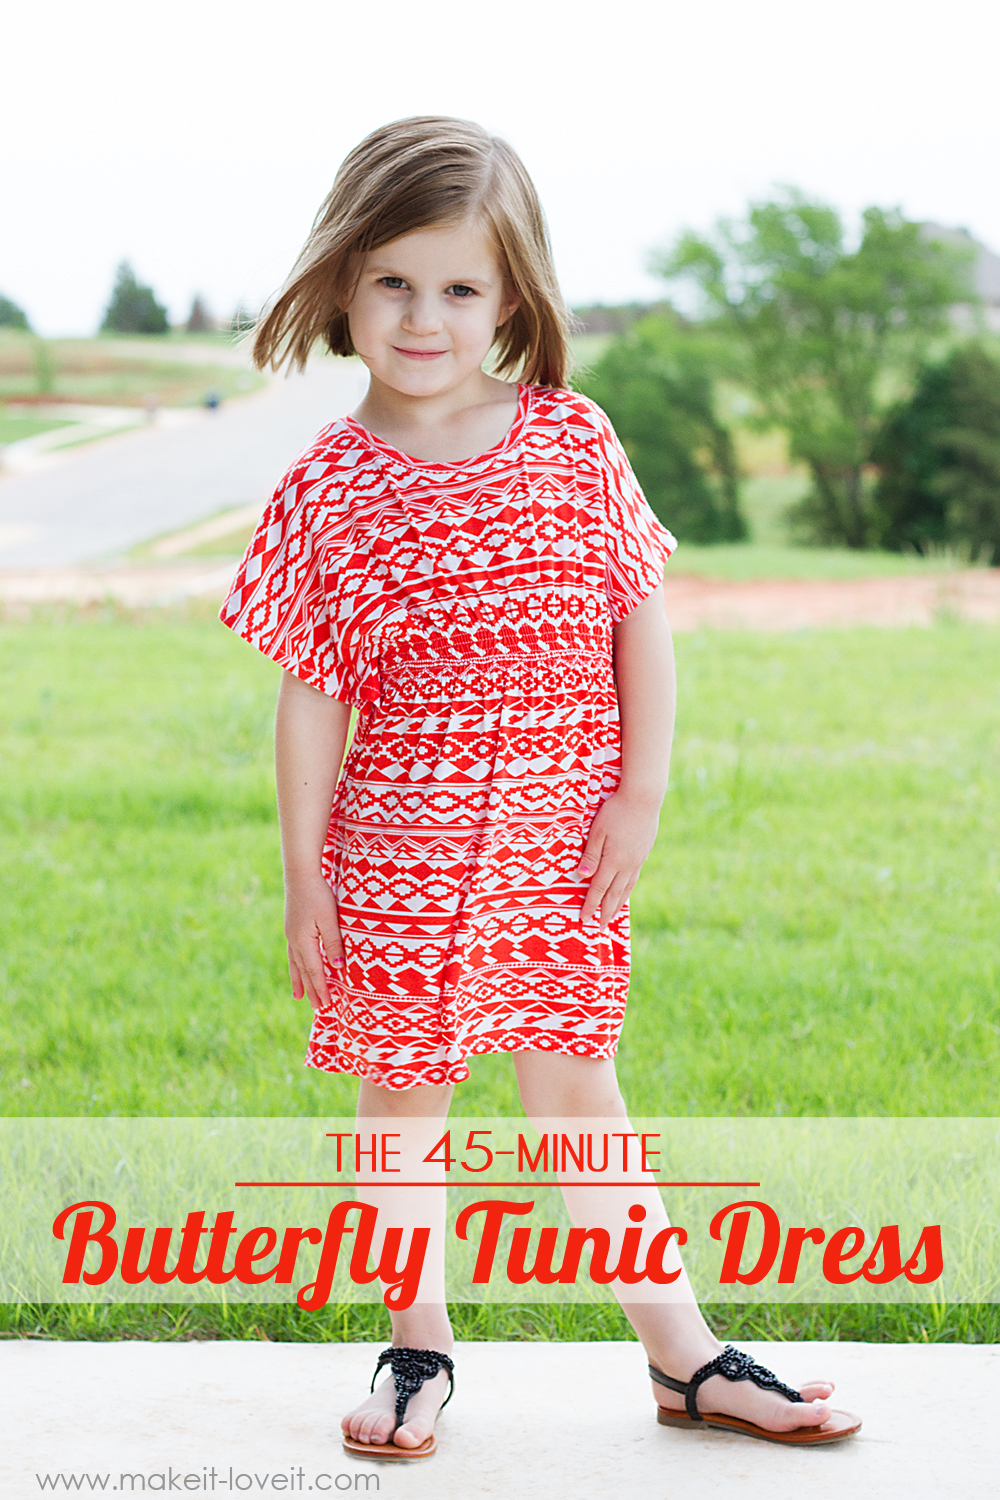 45-minute Butterfly Tunic DRESS from Make it & Love It